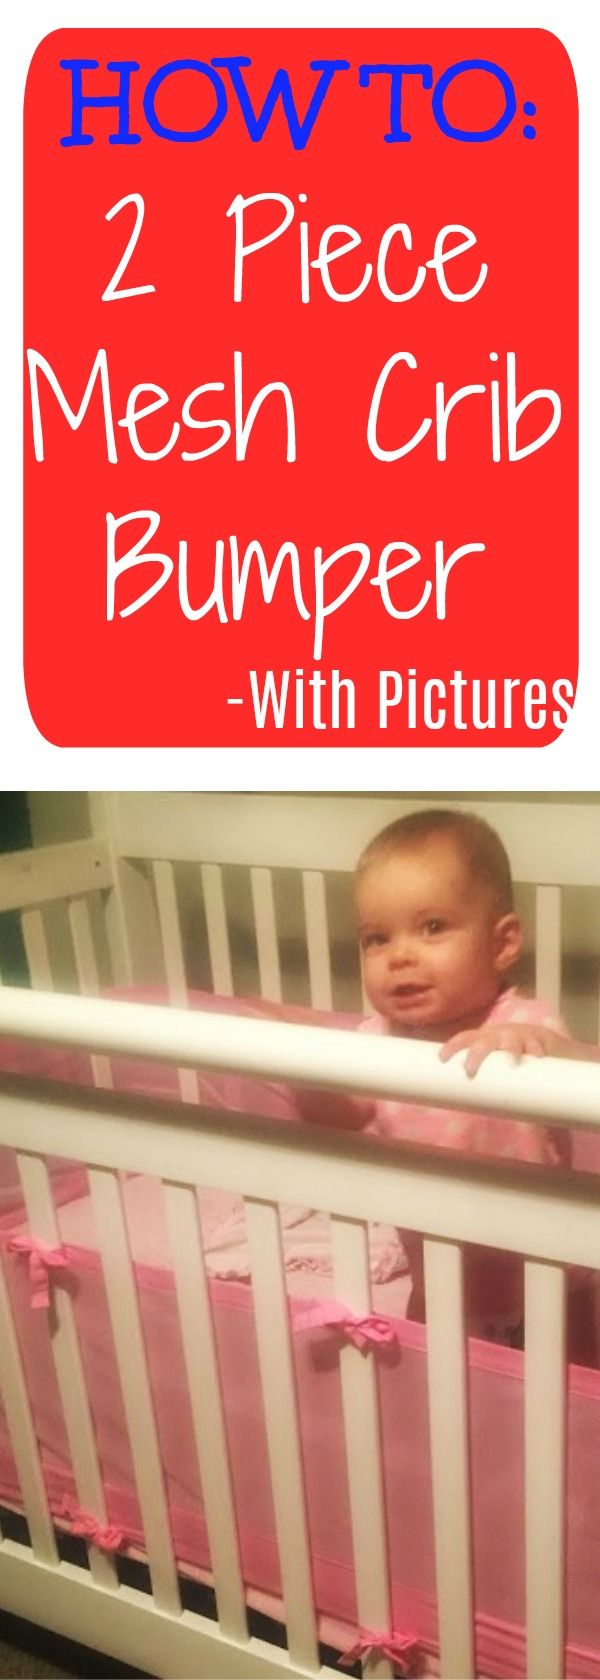 How to put on a mesh crib bumper with step by step guide with pictures. Reduce SIDS risk with a breathable mesh crib bumper!